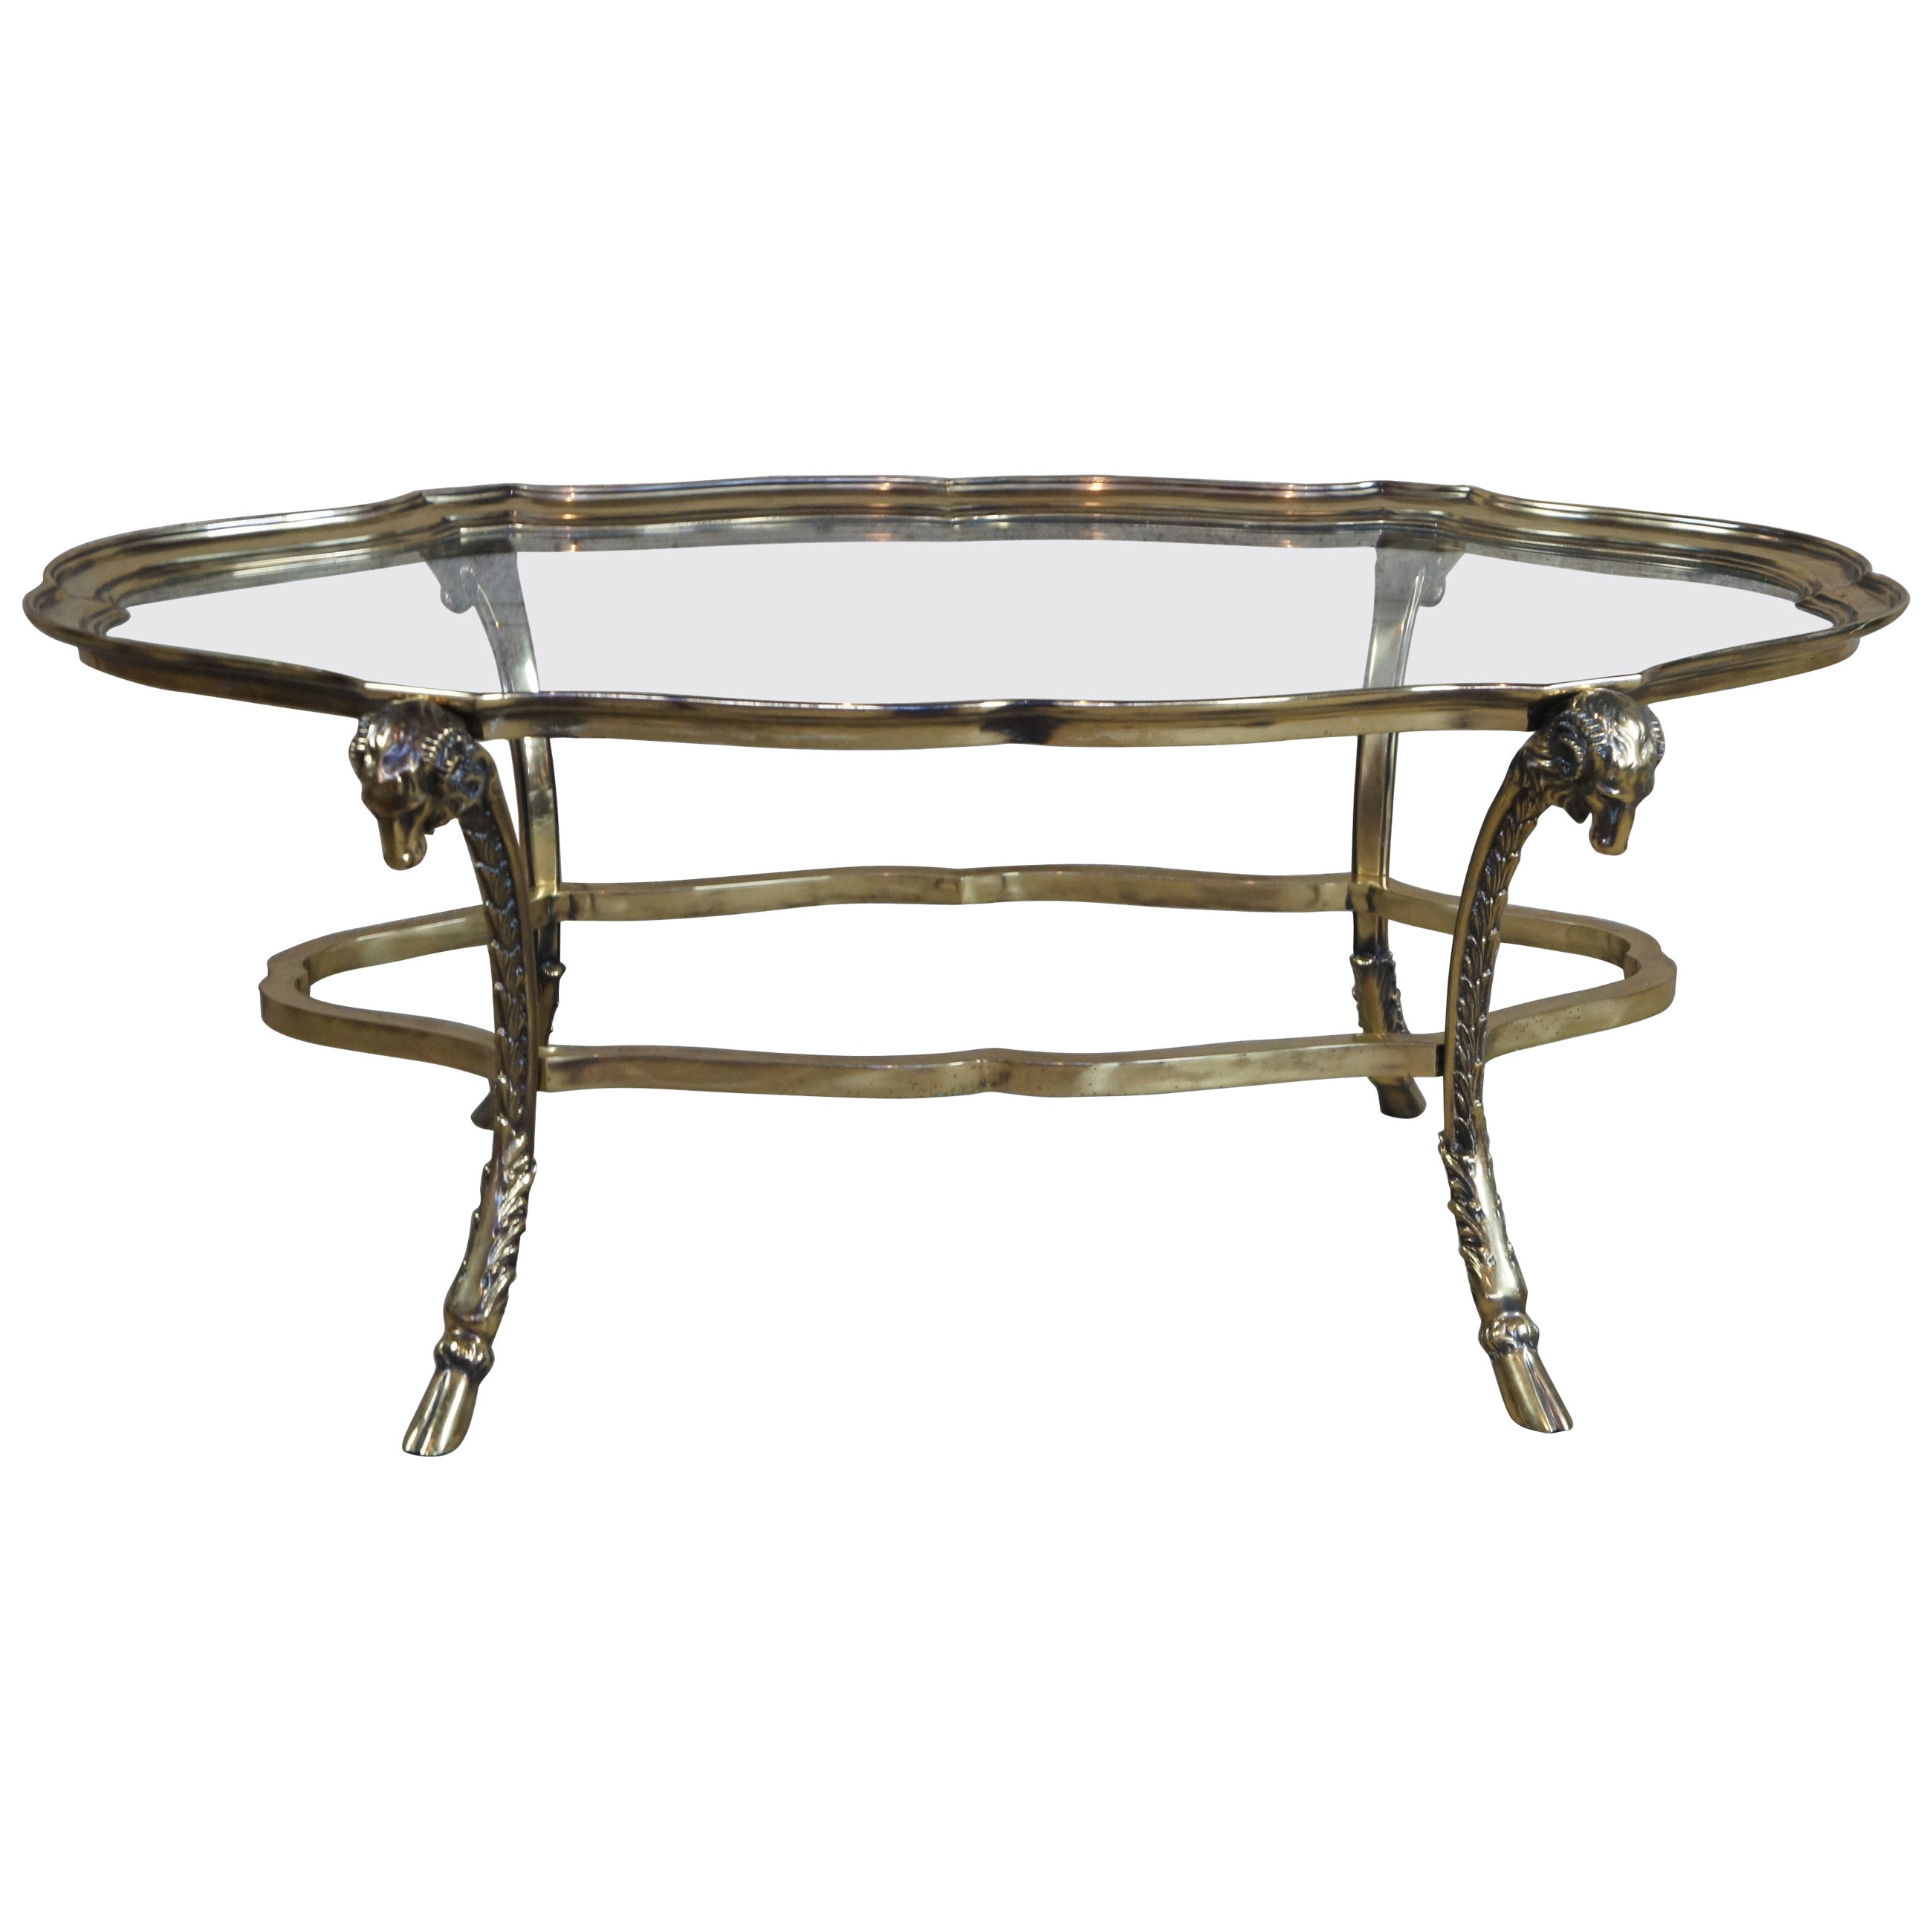 La Barge Figural Rams Head Oval Scallop Glass Coffee Table Maison Charles Style